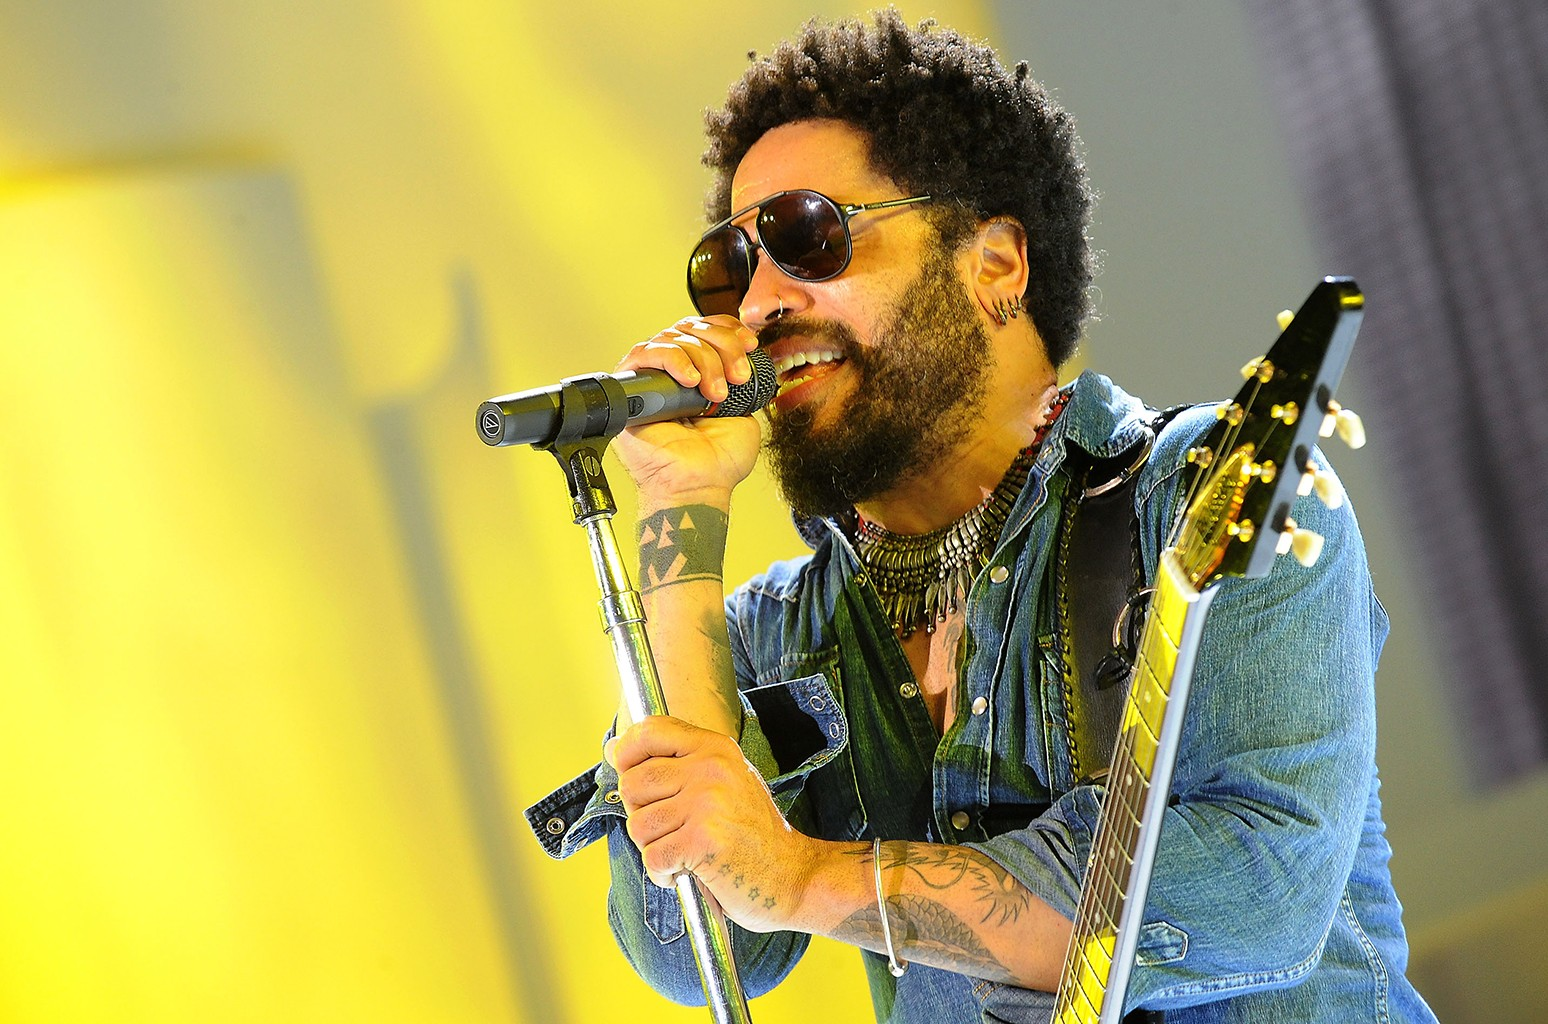 Lenny Kravitz performs in New York City